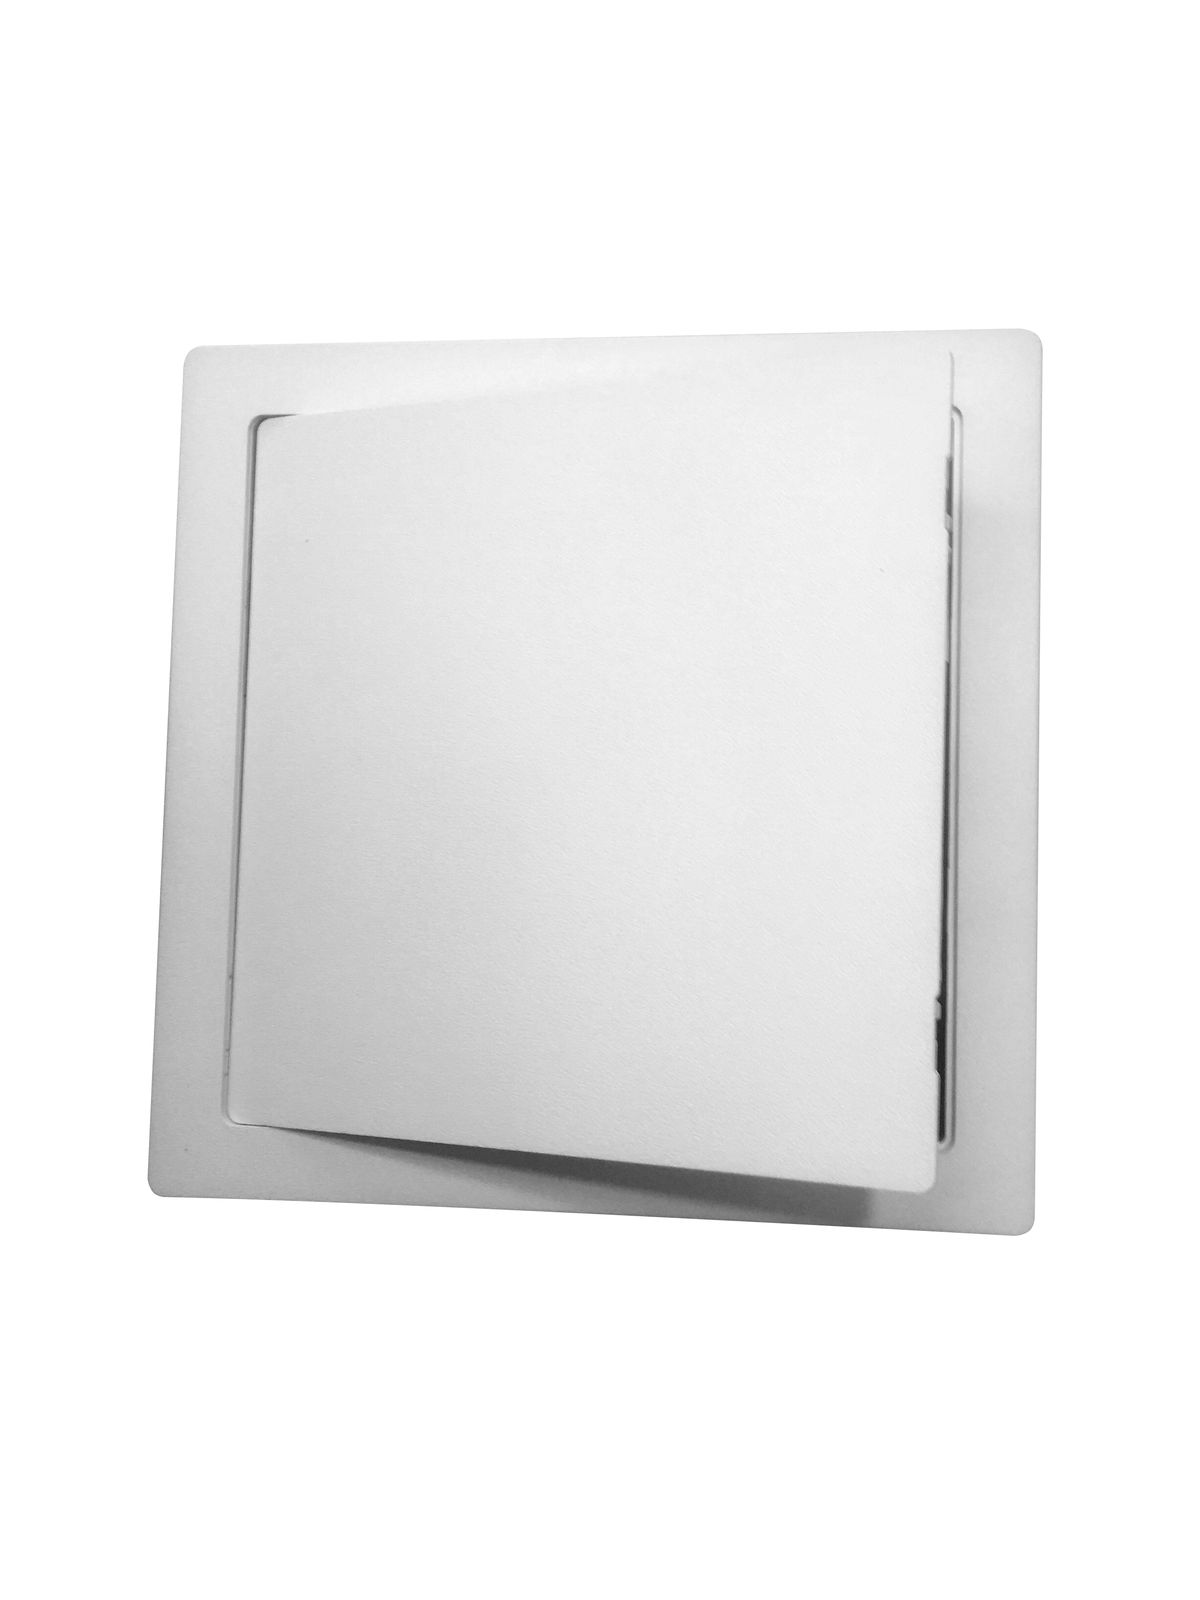 White Plastic Access Panel Inspection Hatch Revision Door 350mm x 350mm (14